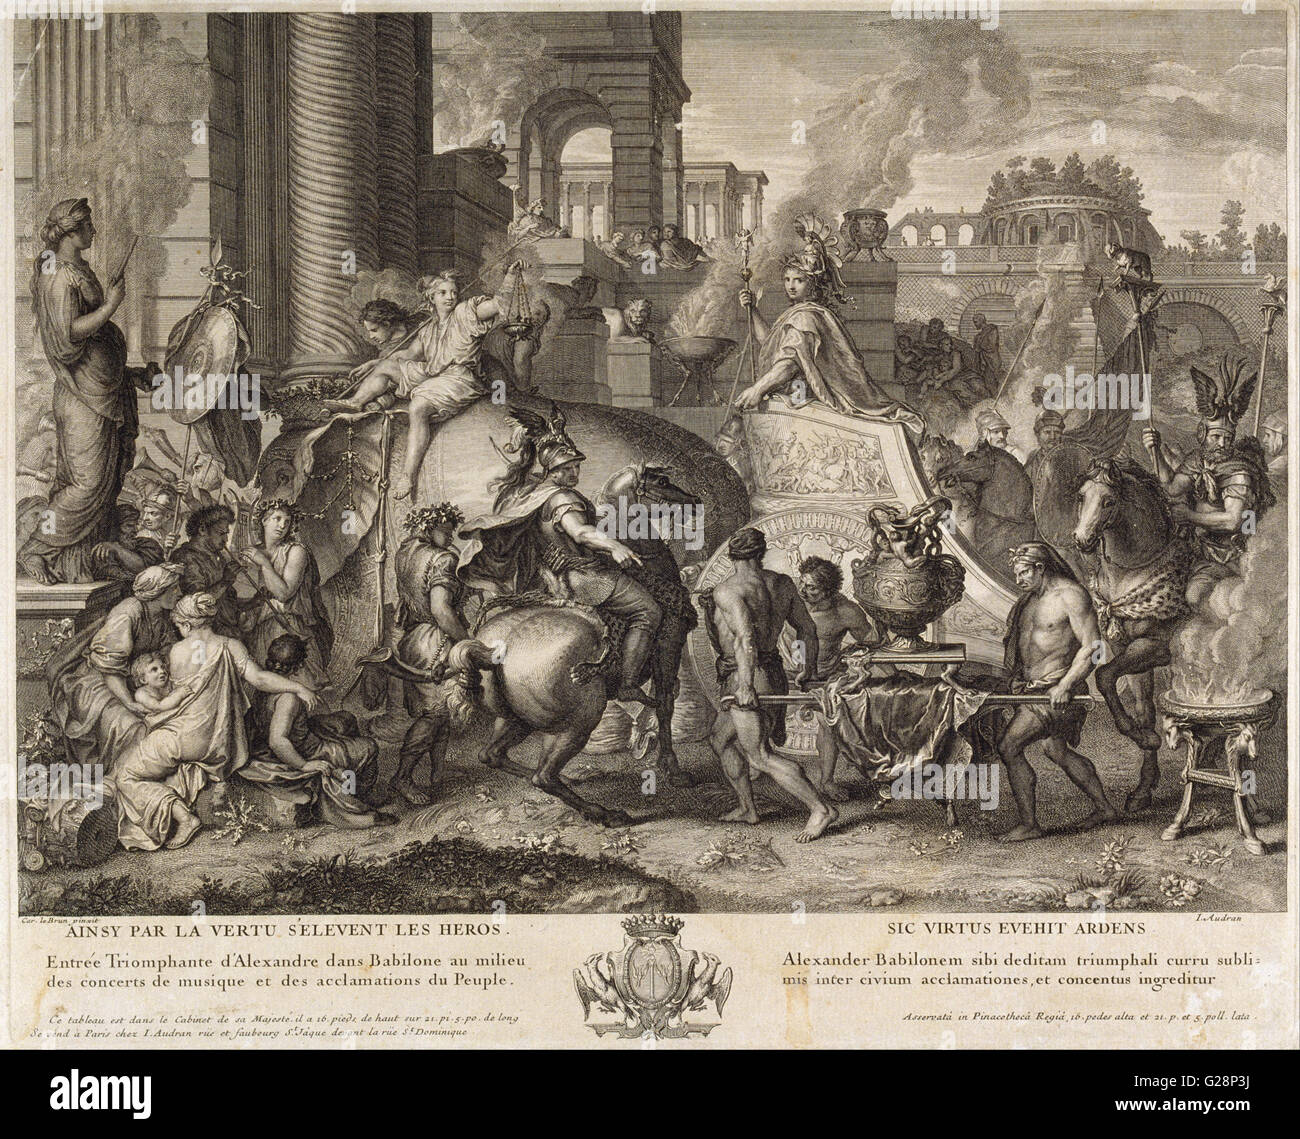 Jean Audran - Alexander the Great Enters Babylonia  - MNAC - Barcelona - Stock Image